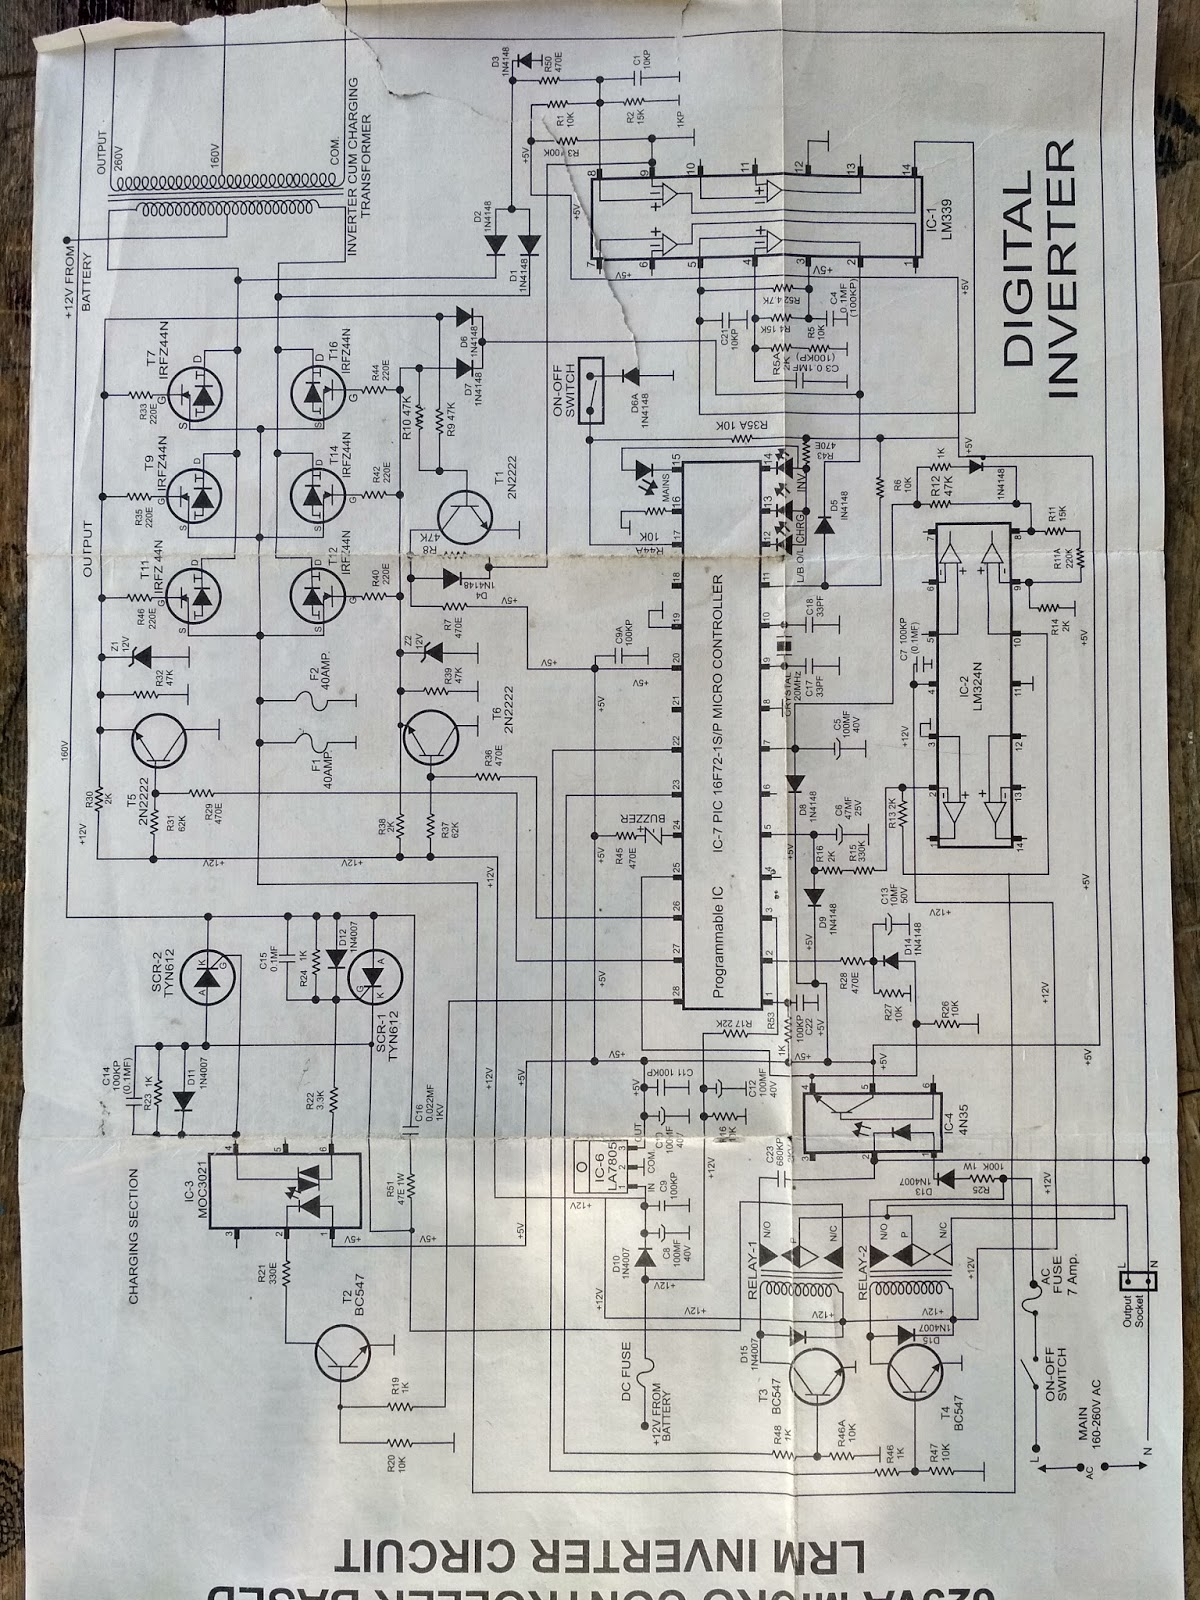 Schematic Diagram Inverter Pure Sinewave Luminous Old Model Circuit Hd